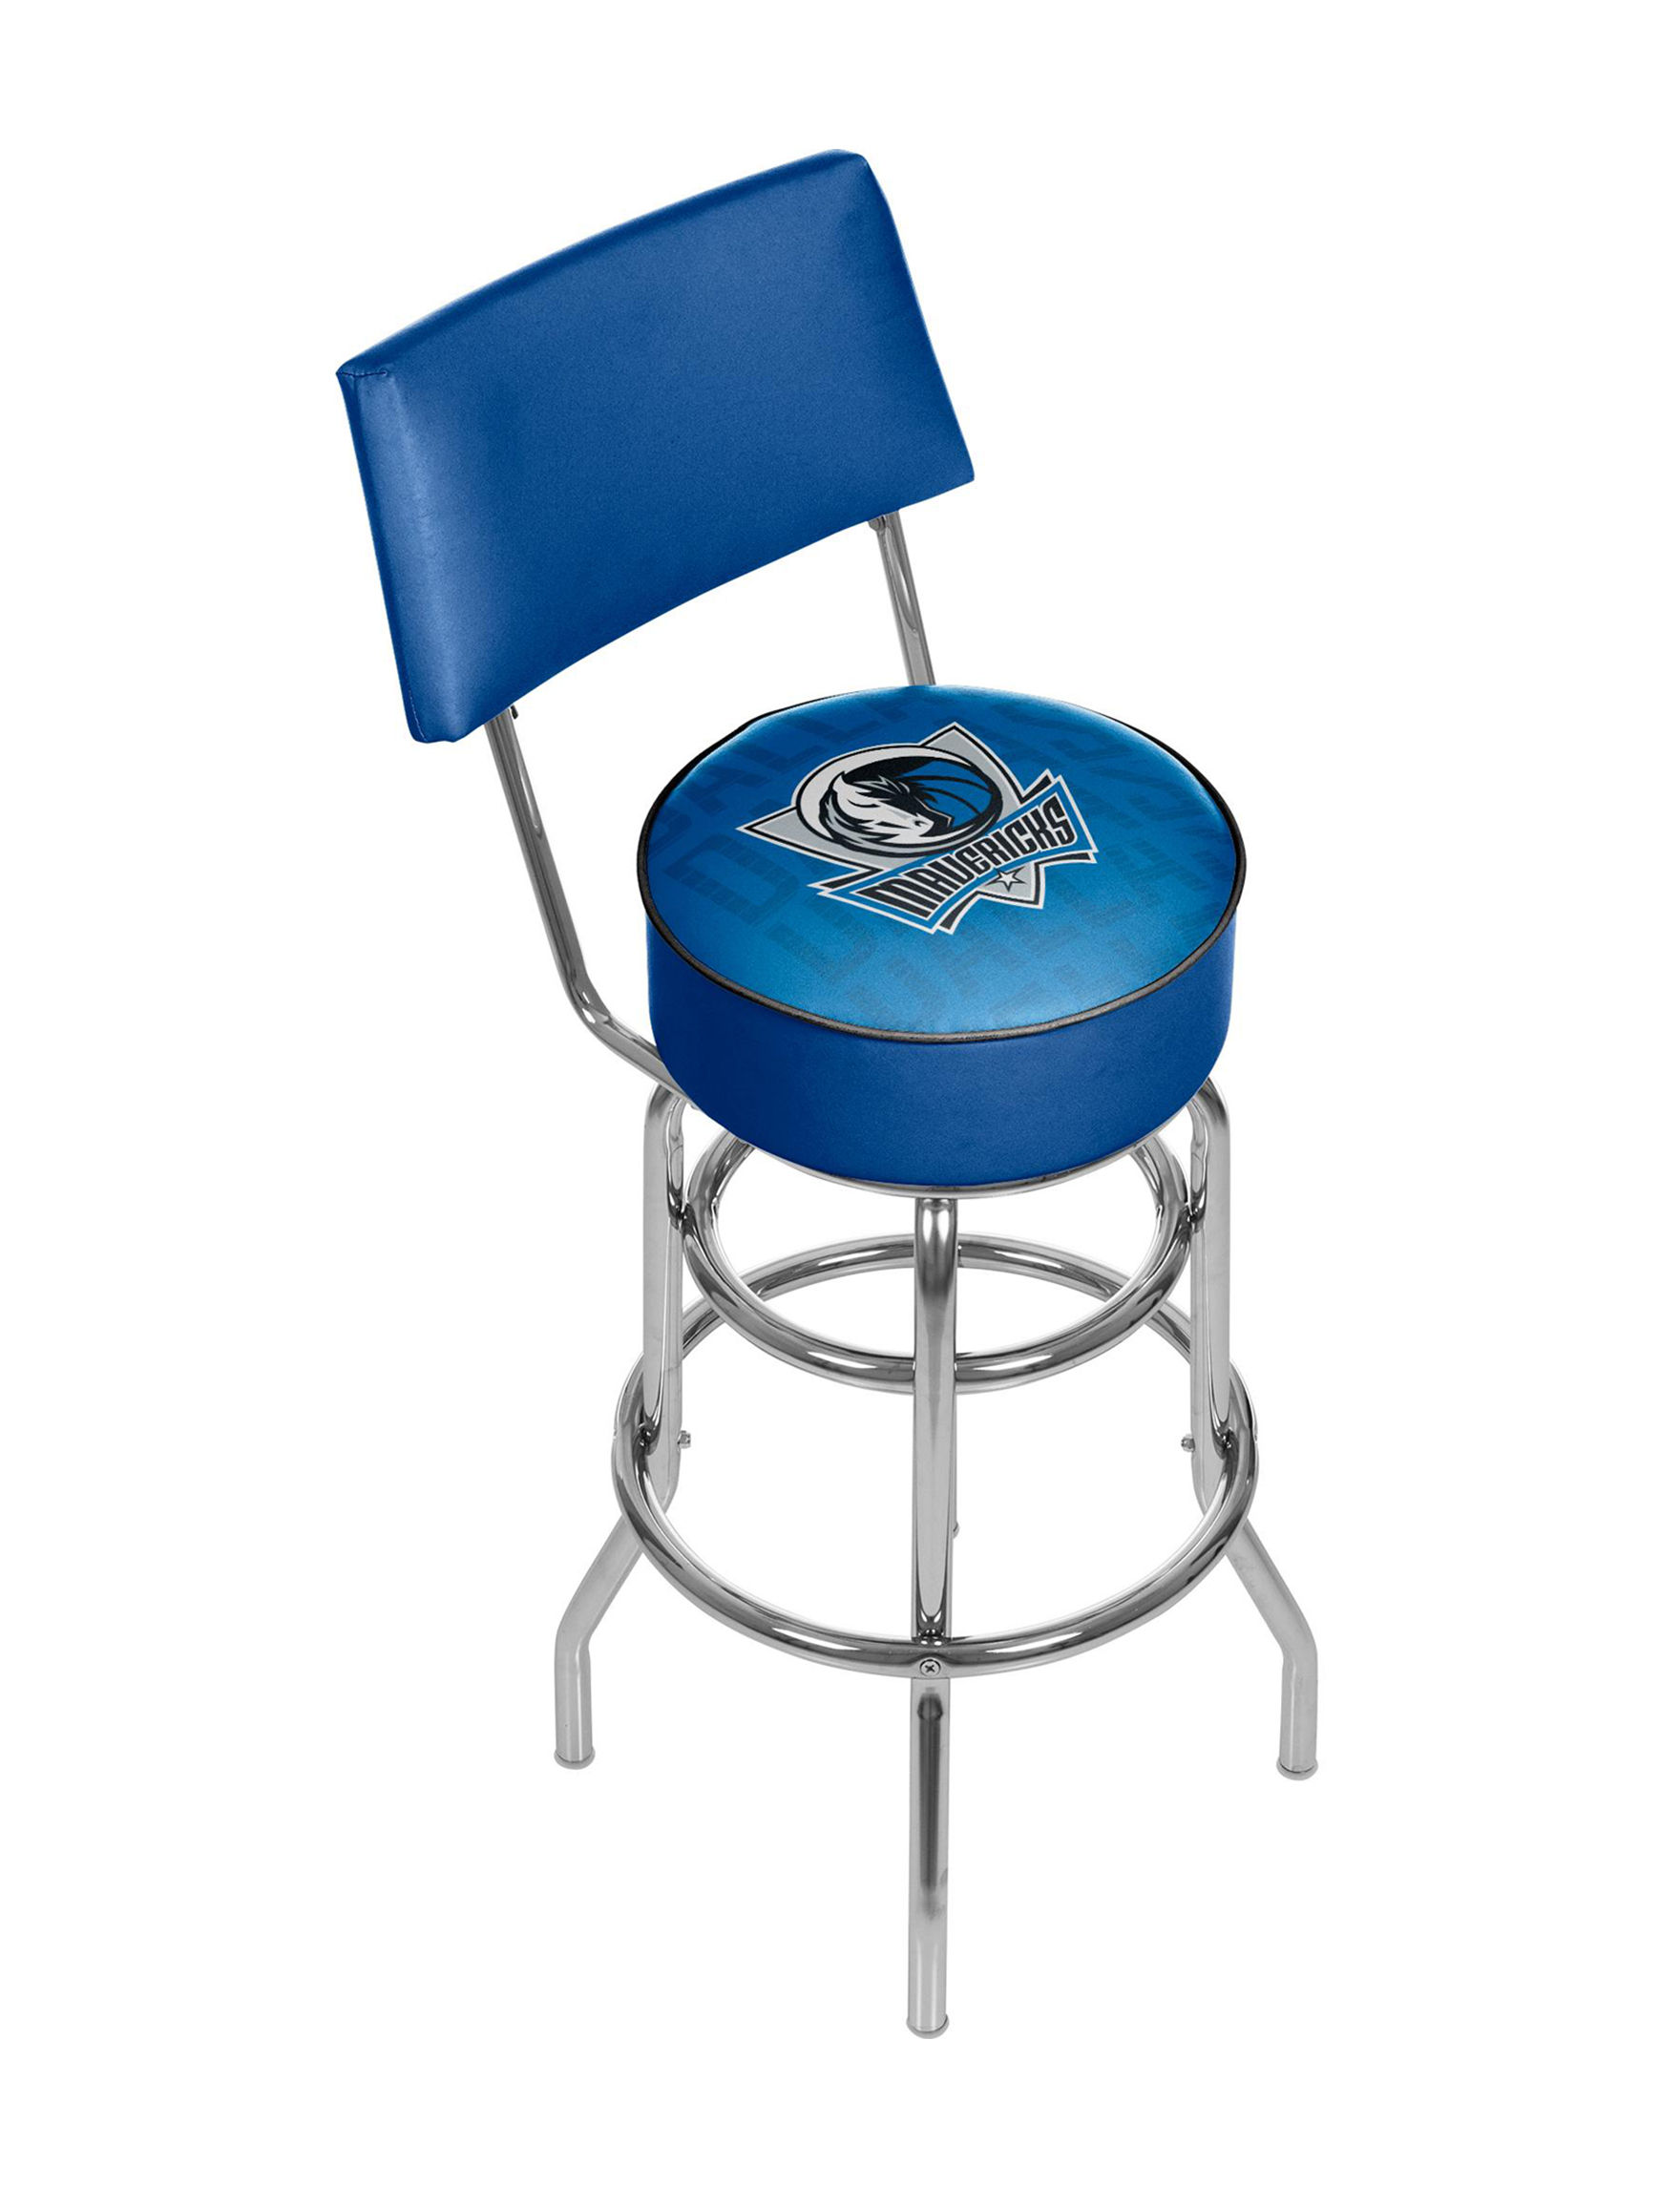 Trademark Global Blue / Silver Bar & Kitchen Stools Kitchen & Dining Furniture